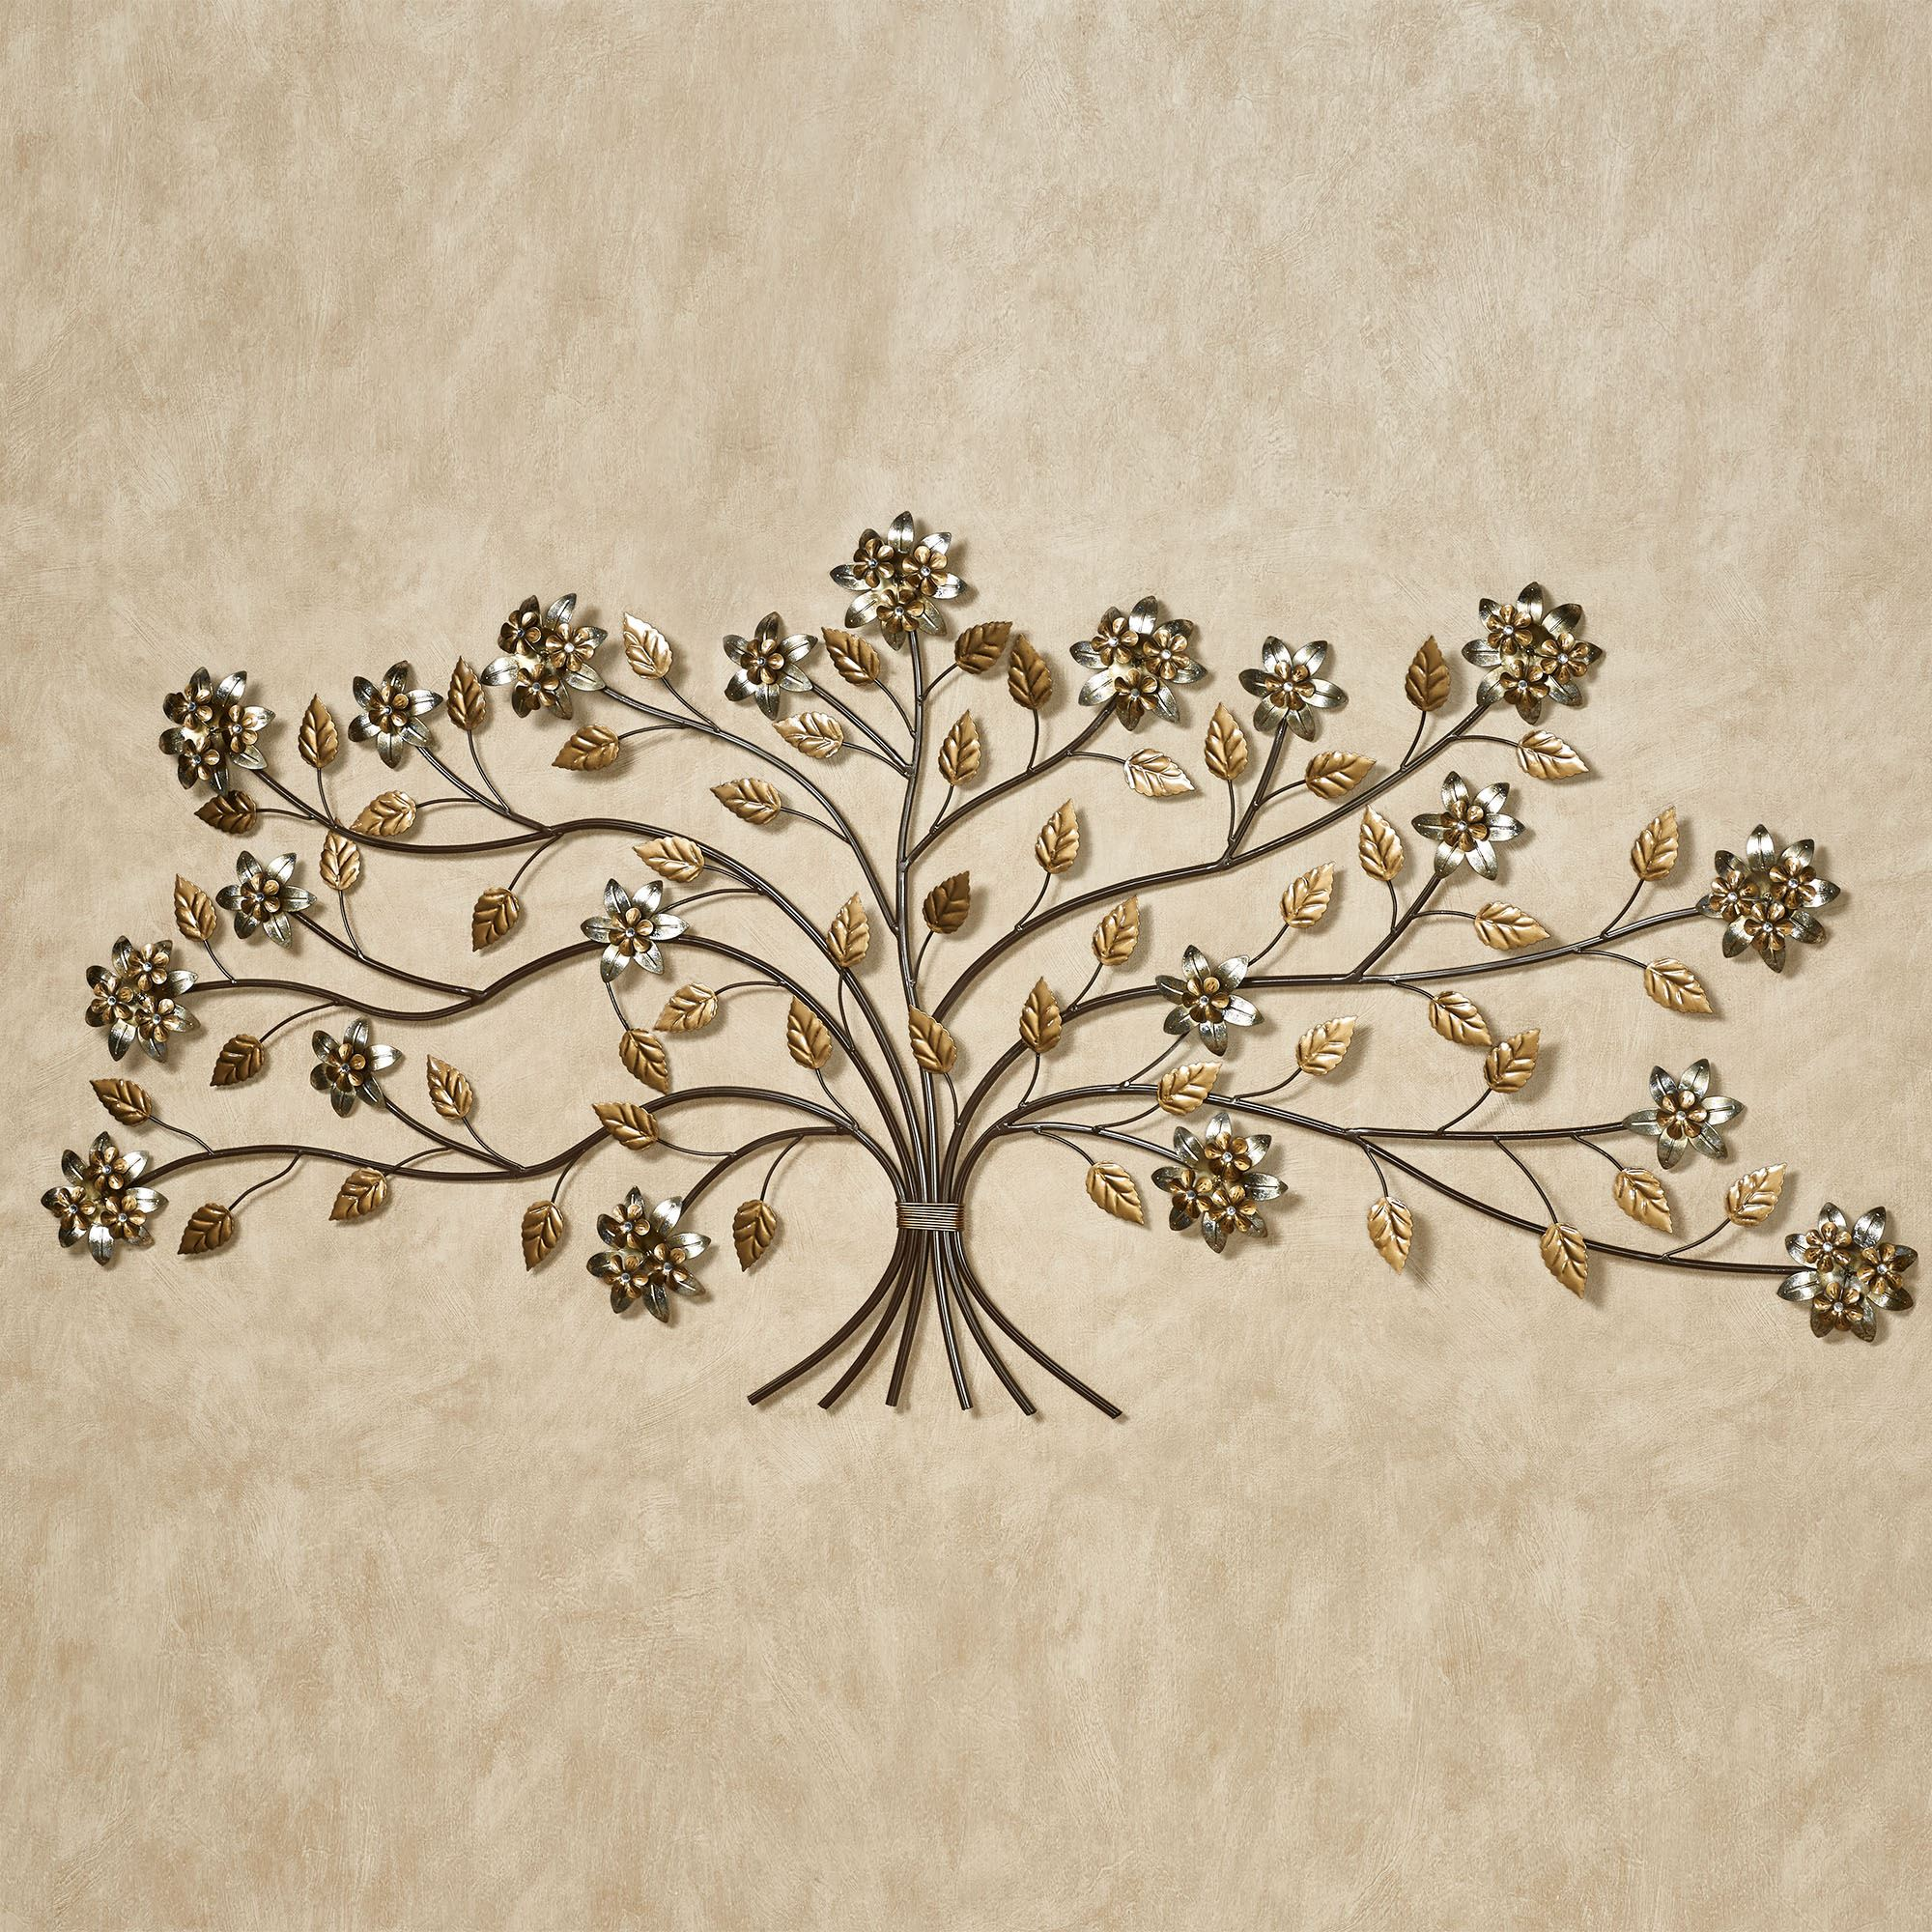 Bellissa floral branch metal wall art 59 inches wide for Wire wall art